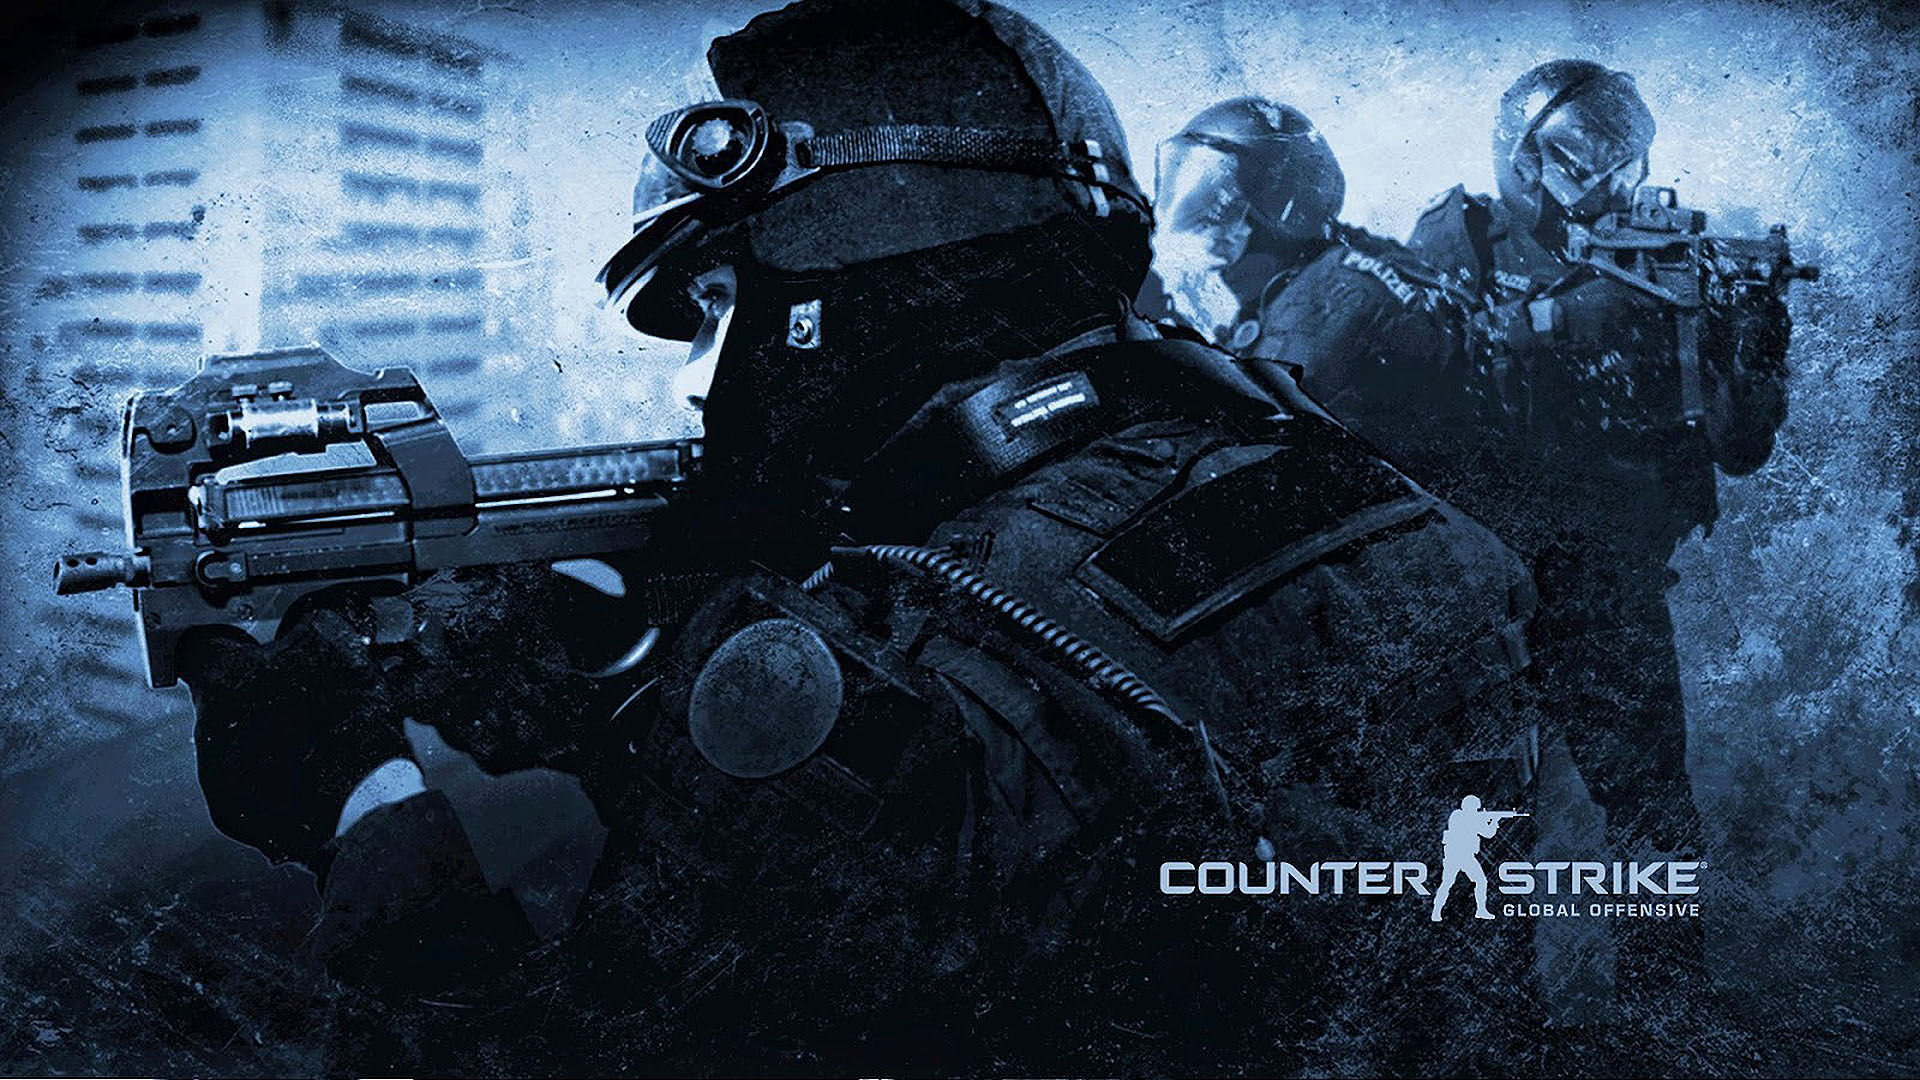 Photo of Counter-Strike jucat cu un tub de ruj